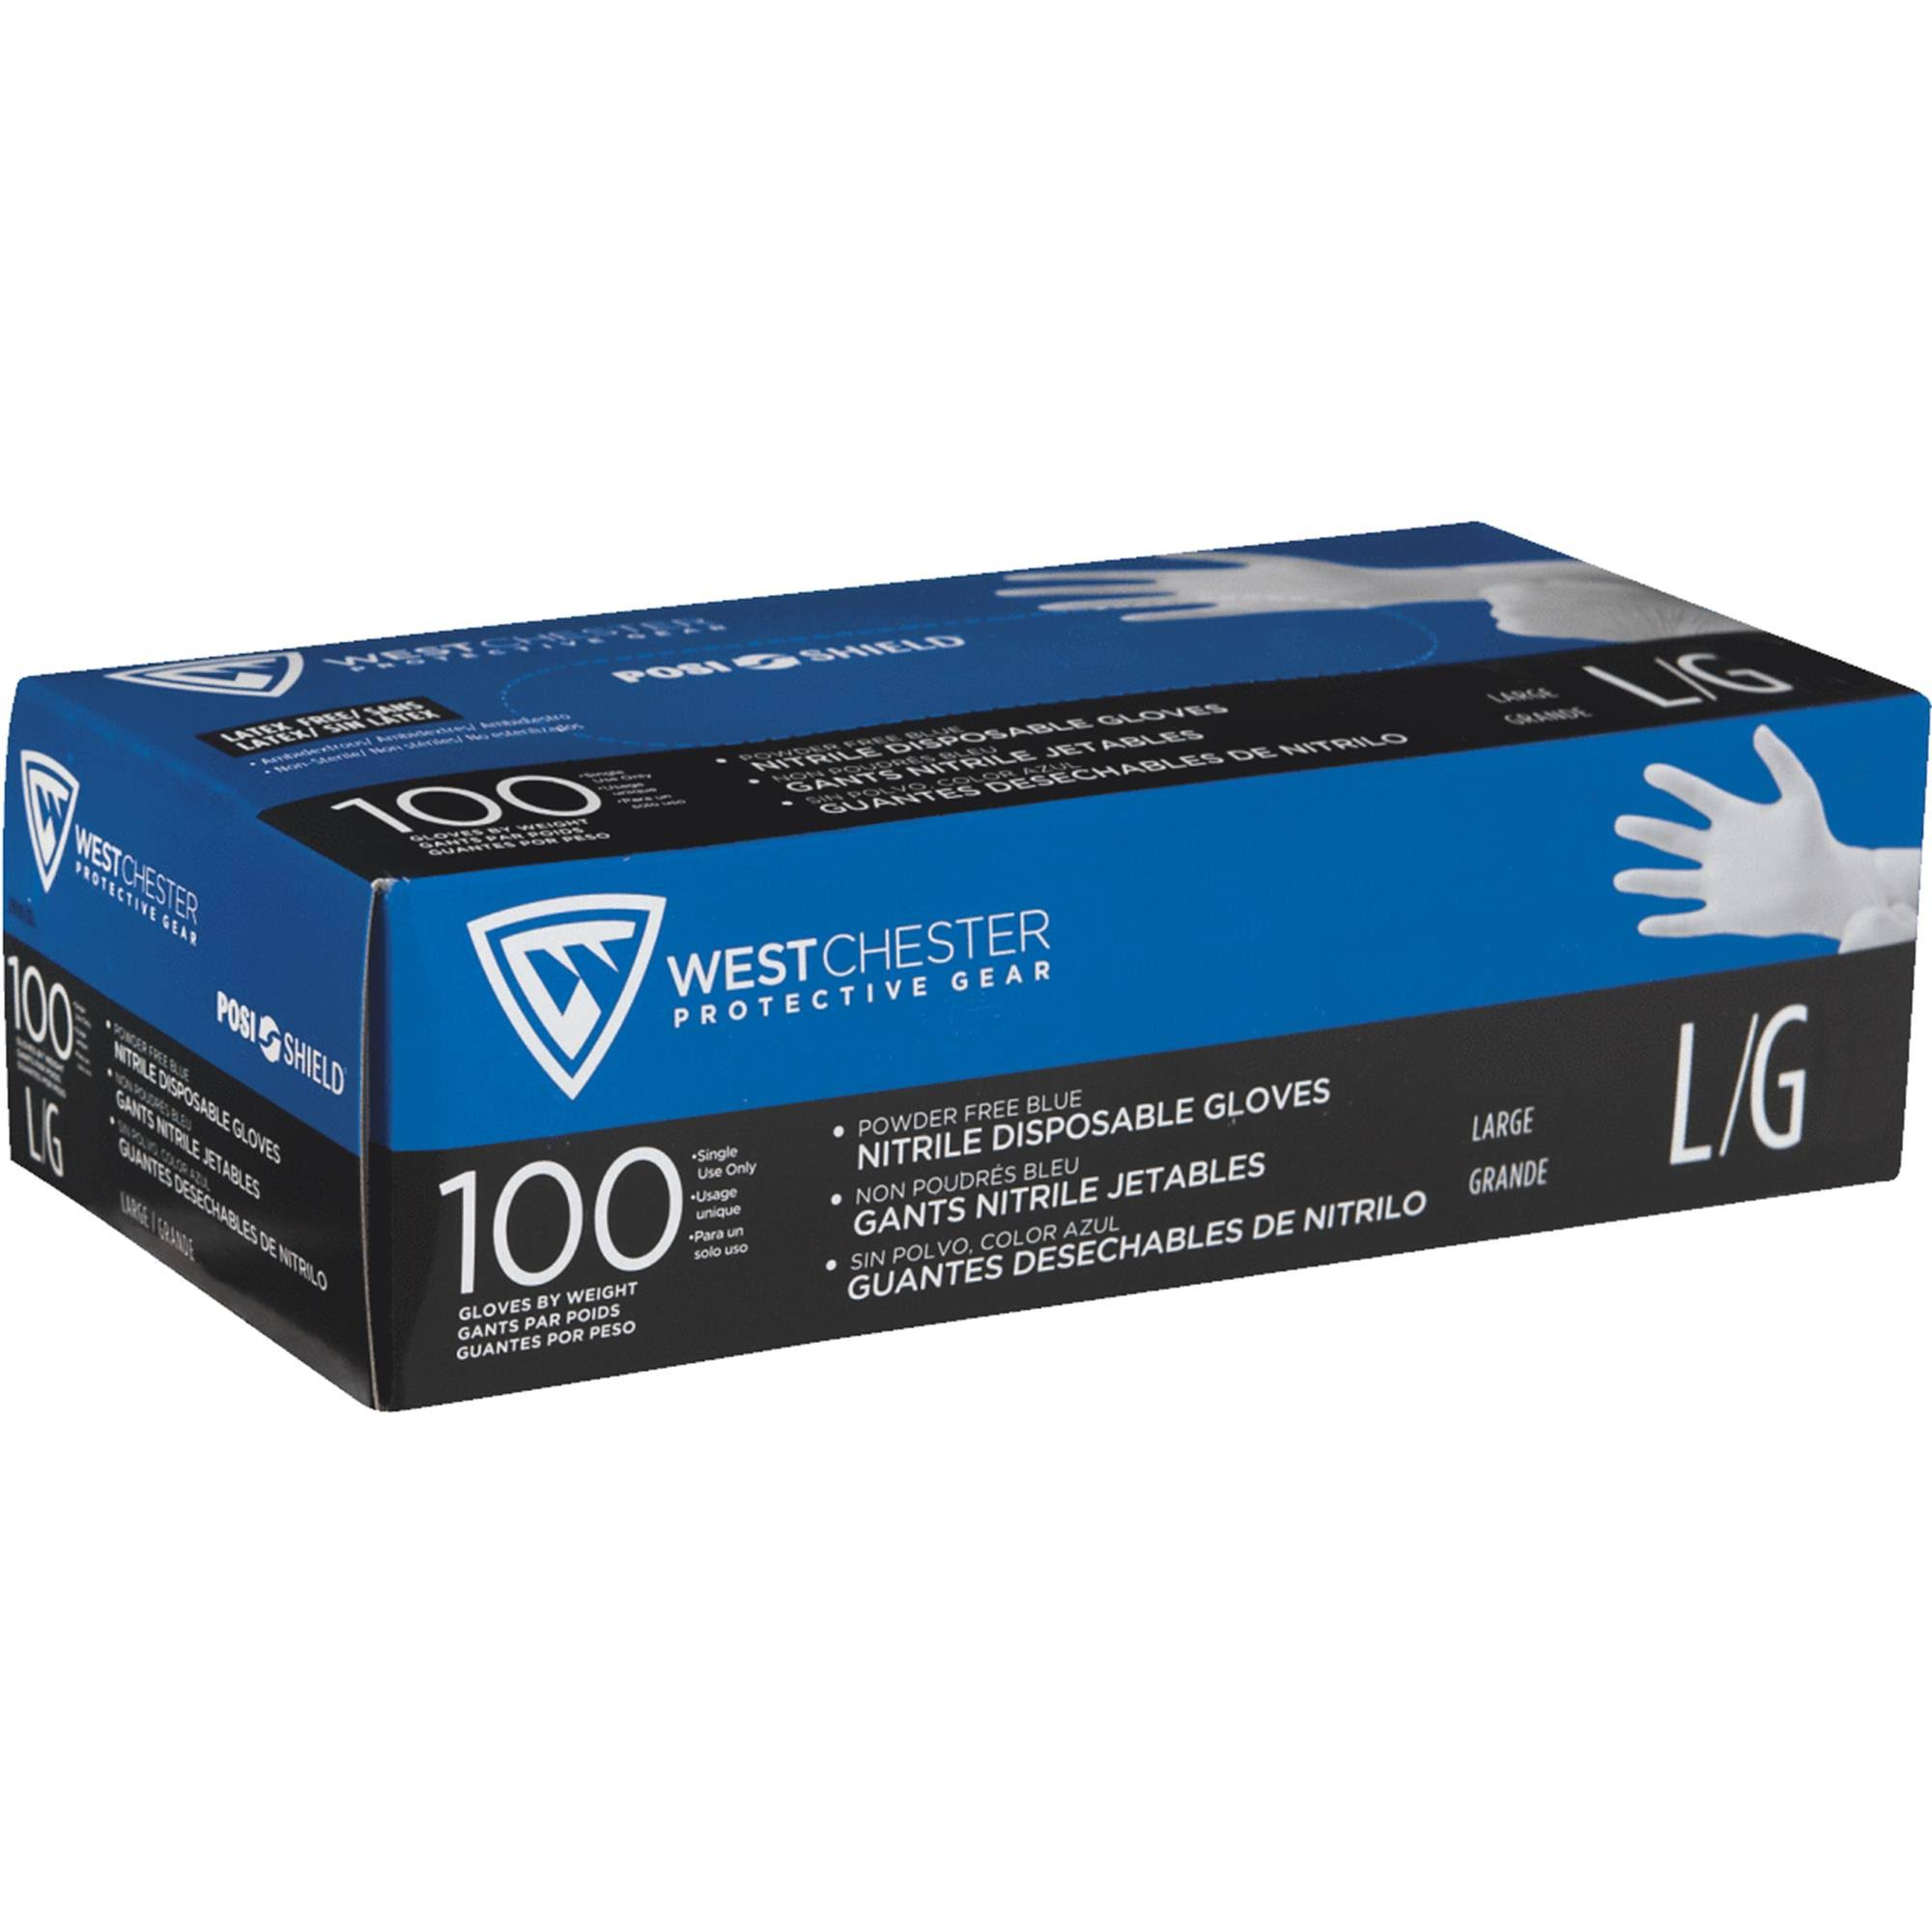 West Chester Powder Free Nitrile Disposable Gloves - Large, x100